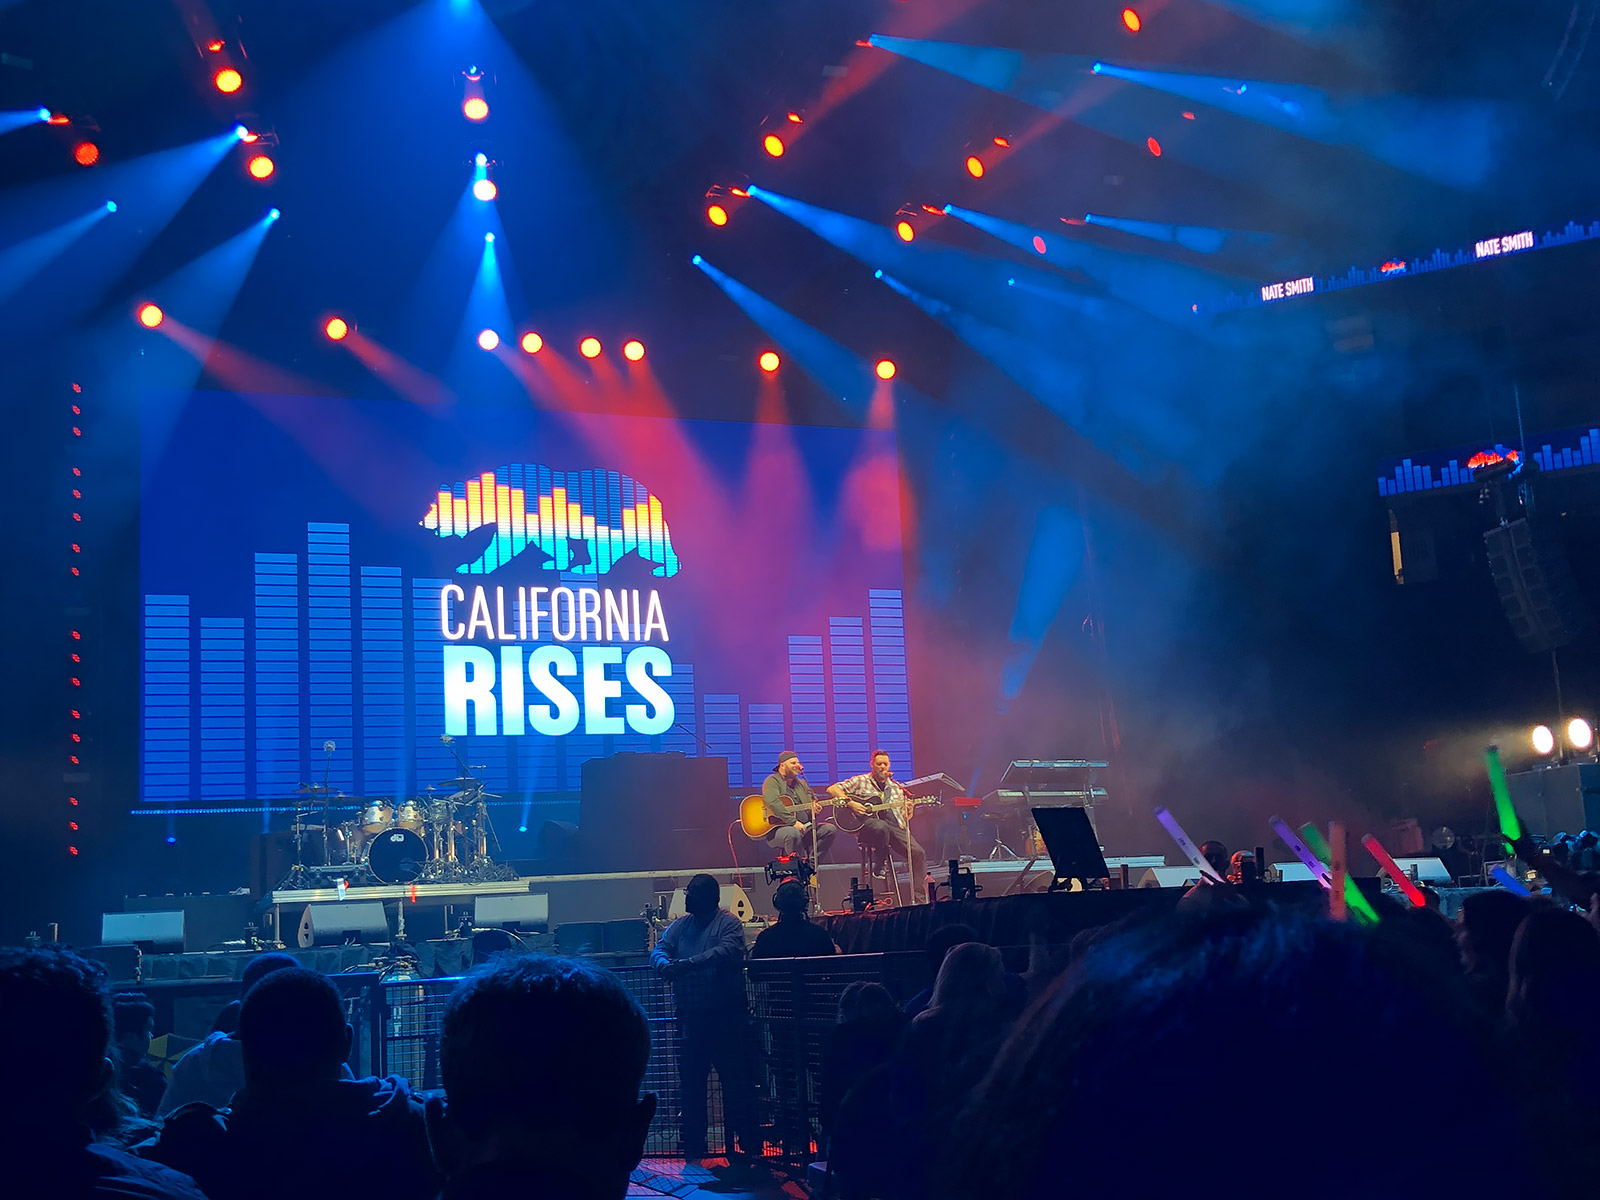 "Long-Term Fire Relief GrantsAwarded as ""California Rises"" - CALIFORNIA FIRE FOUNDATION DISTRIBUTES MILLIONS IN FUNDS FROM GOVERNOR'S INAUGURAL CONCERT"